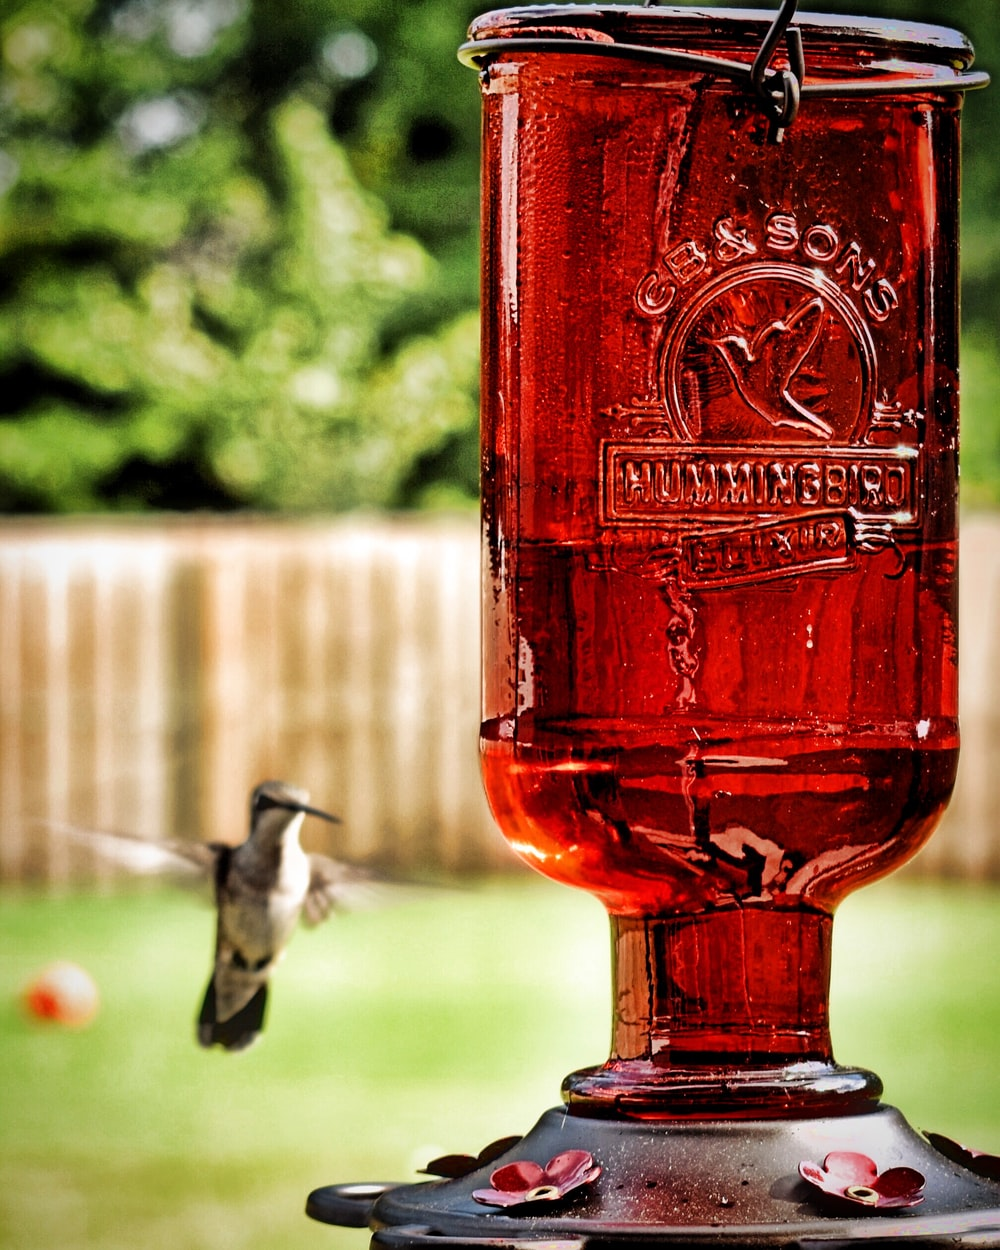 photograph of red bottle near flying humming bird